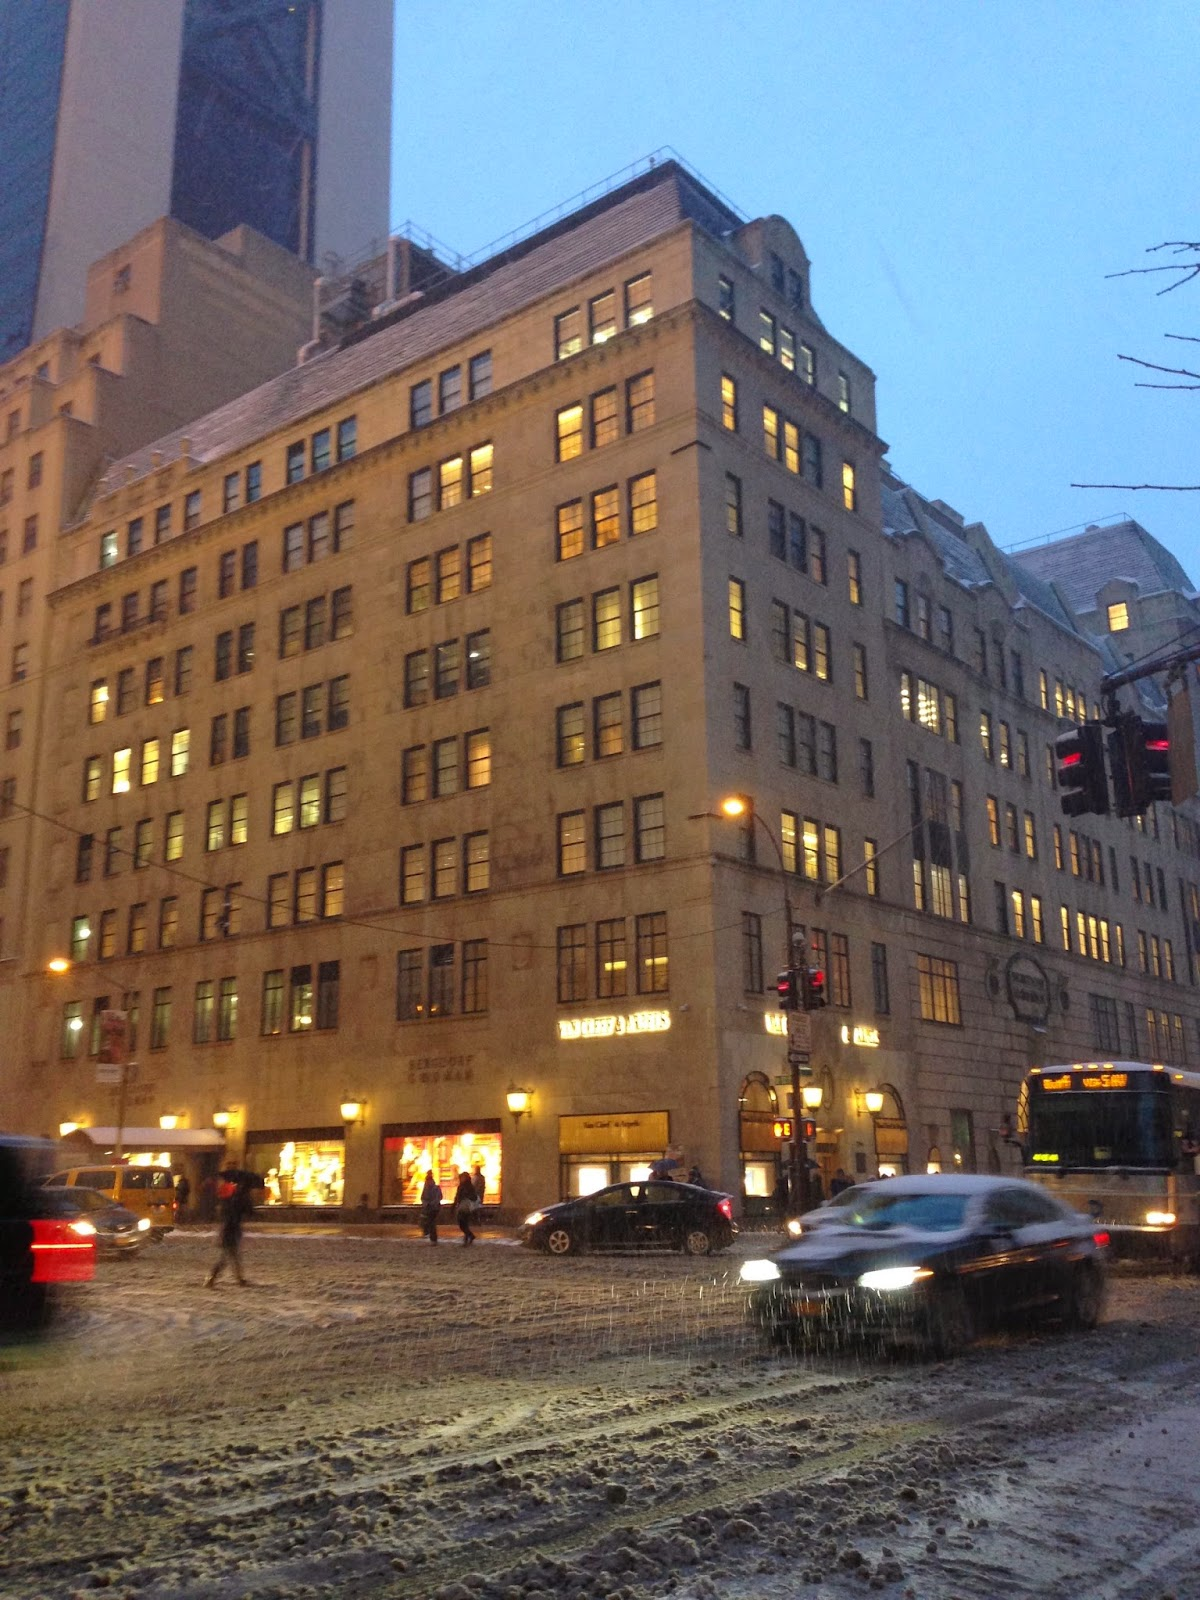 Bergdorf Goodman High Fashion Department store